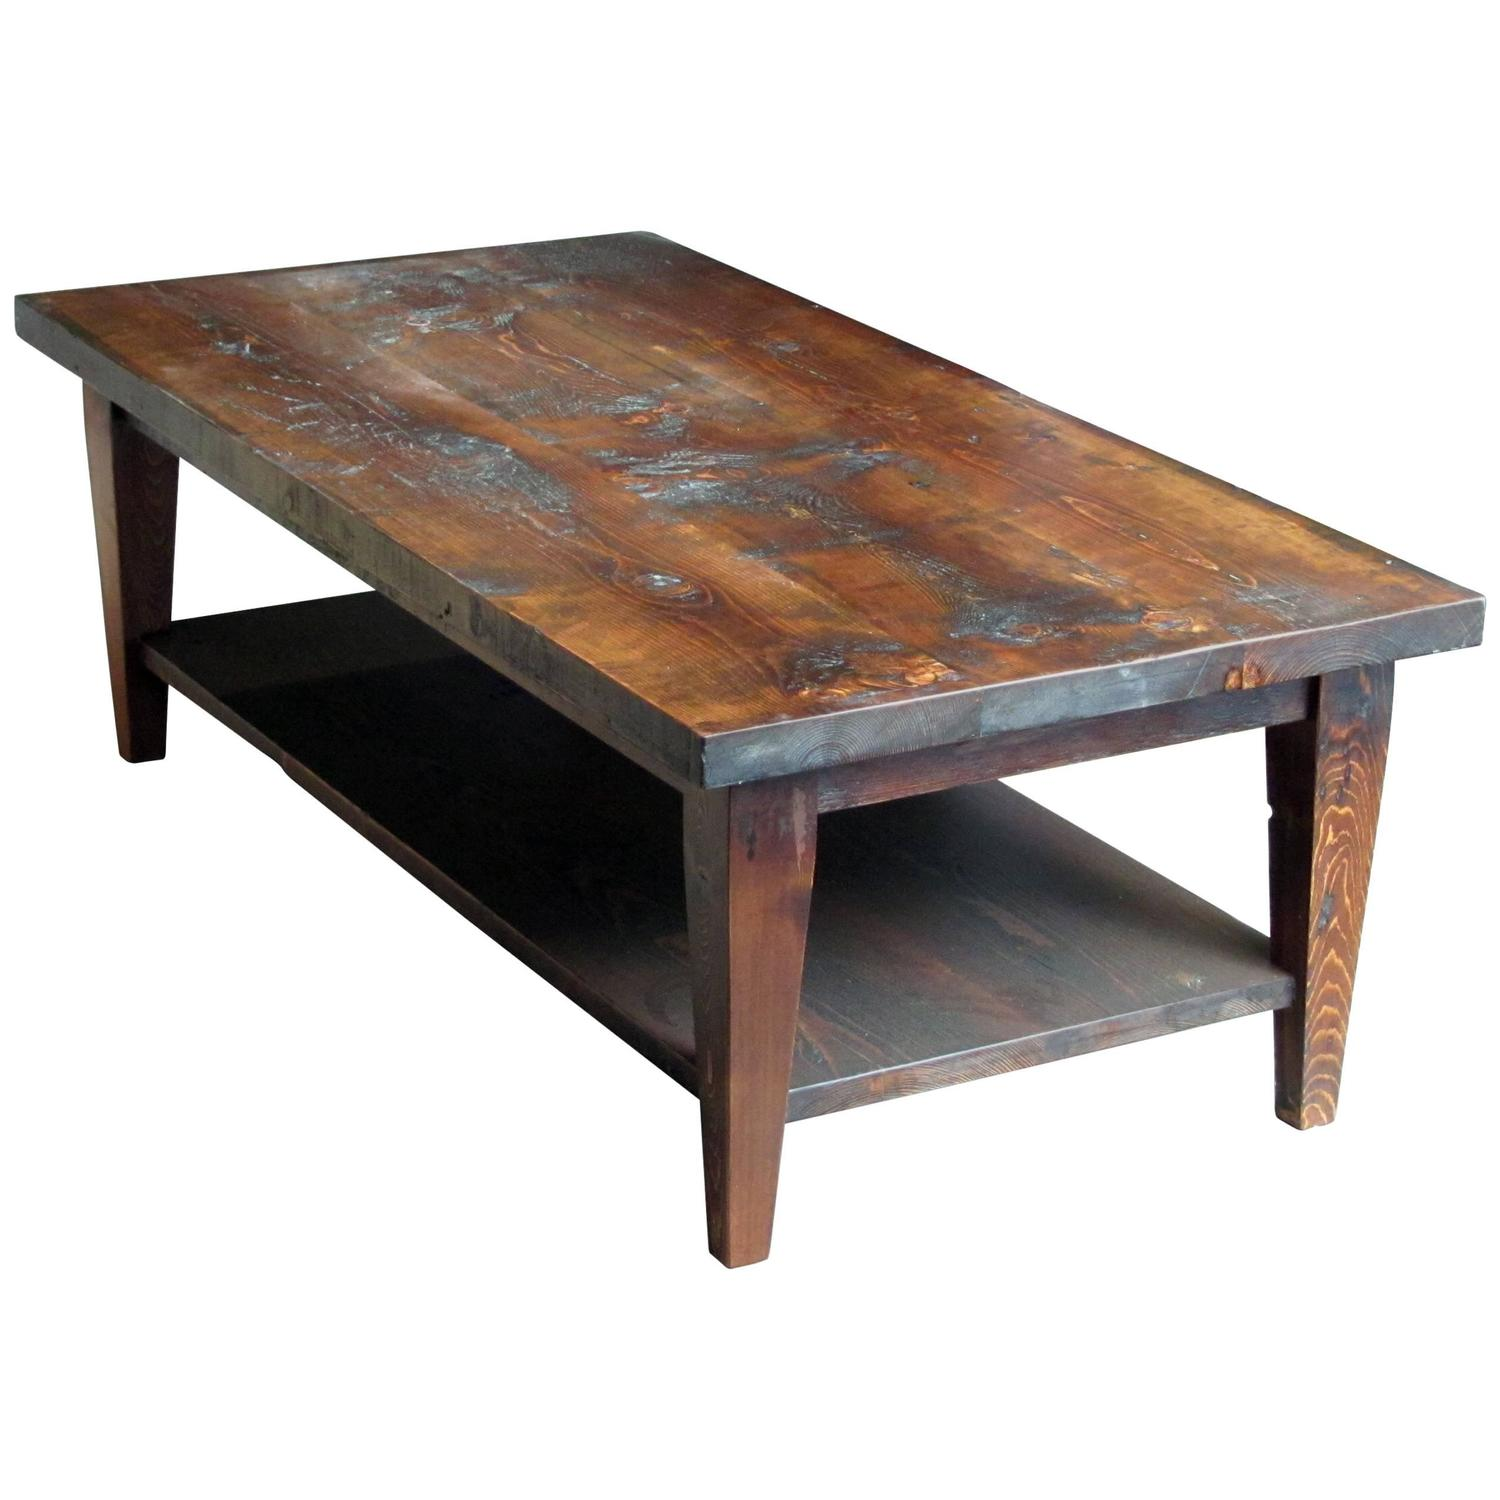 Reclaimed semi rustic pine coffee table with bottom shelf and tapered legs for sale at 1stdibs Coffee tables rustic